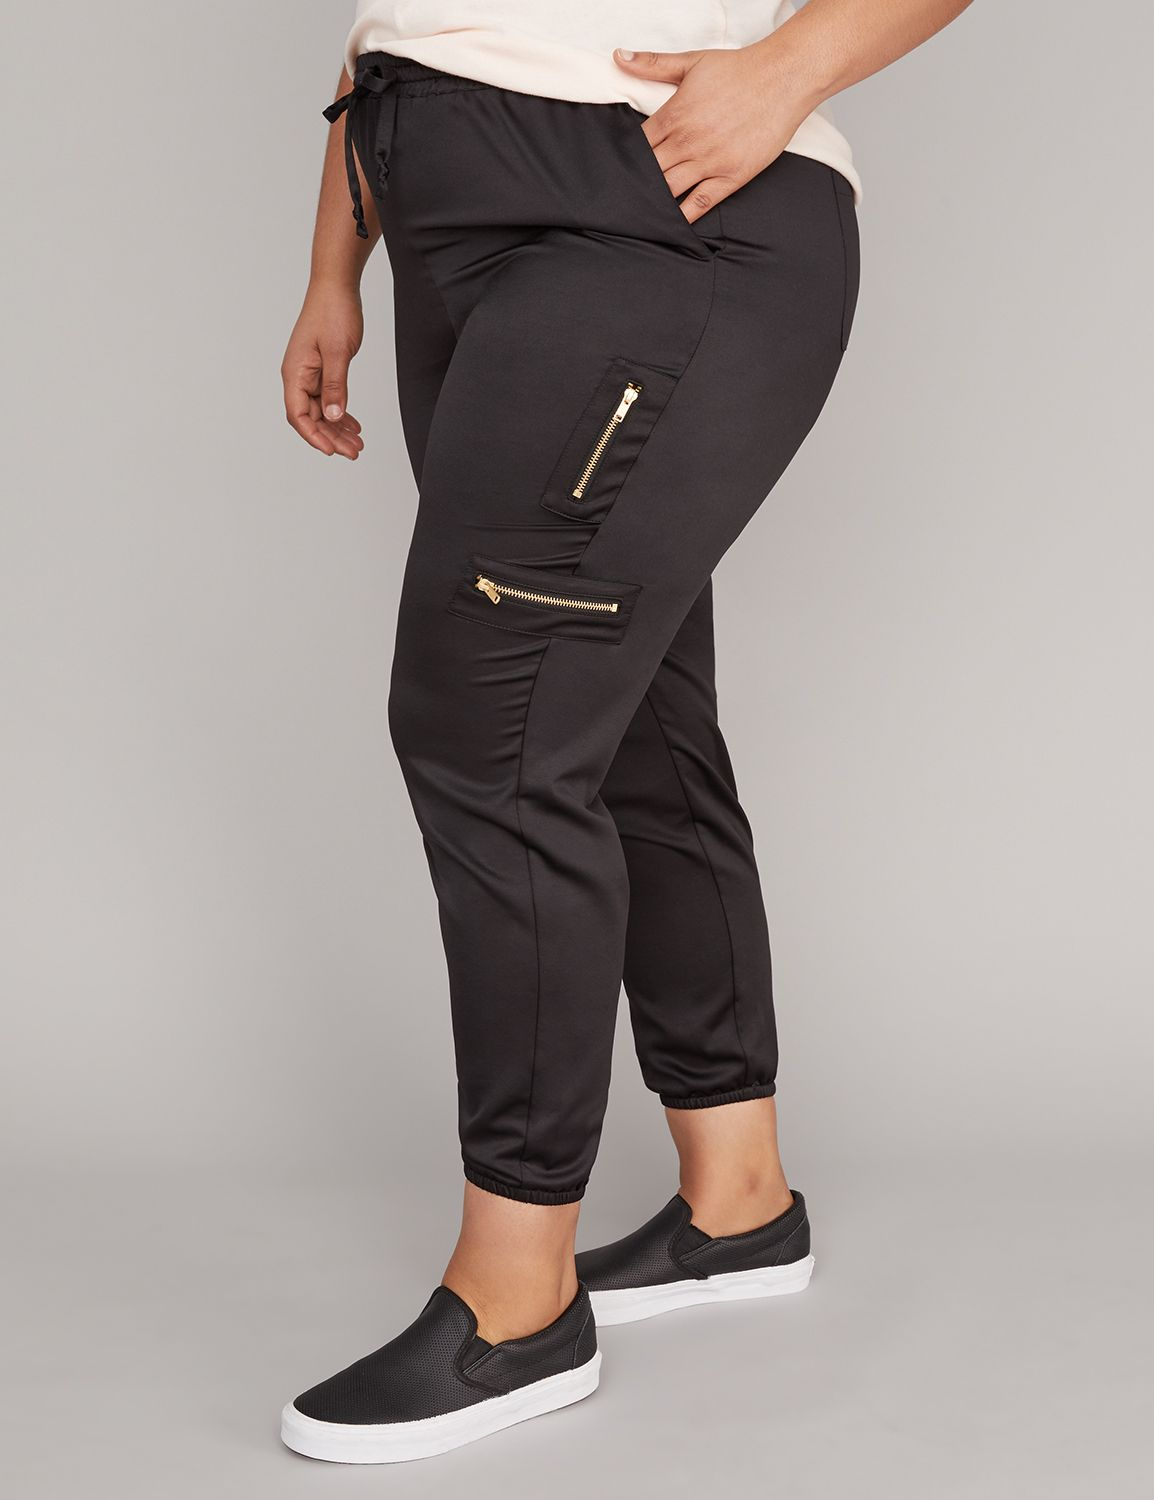 Lane Bryant Womens Zipper Detail Satin Active Cargo Pants 26/28 Pitch Black